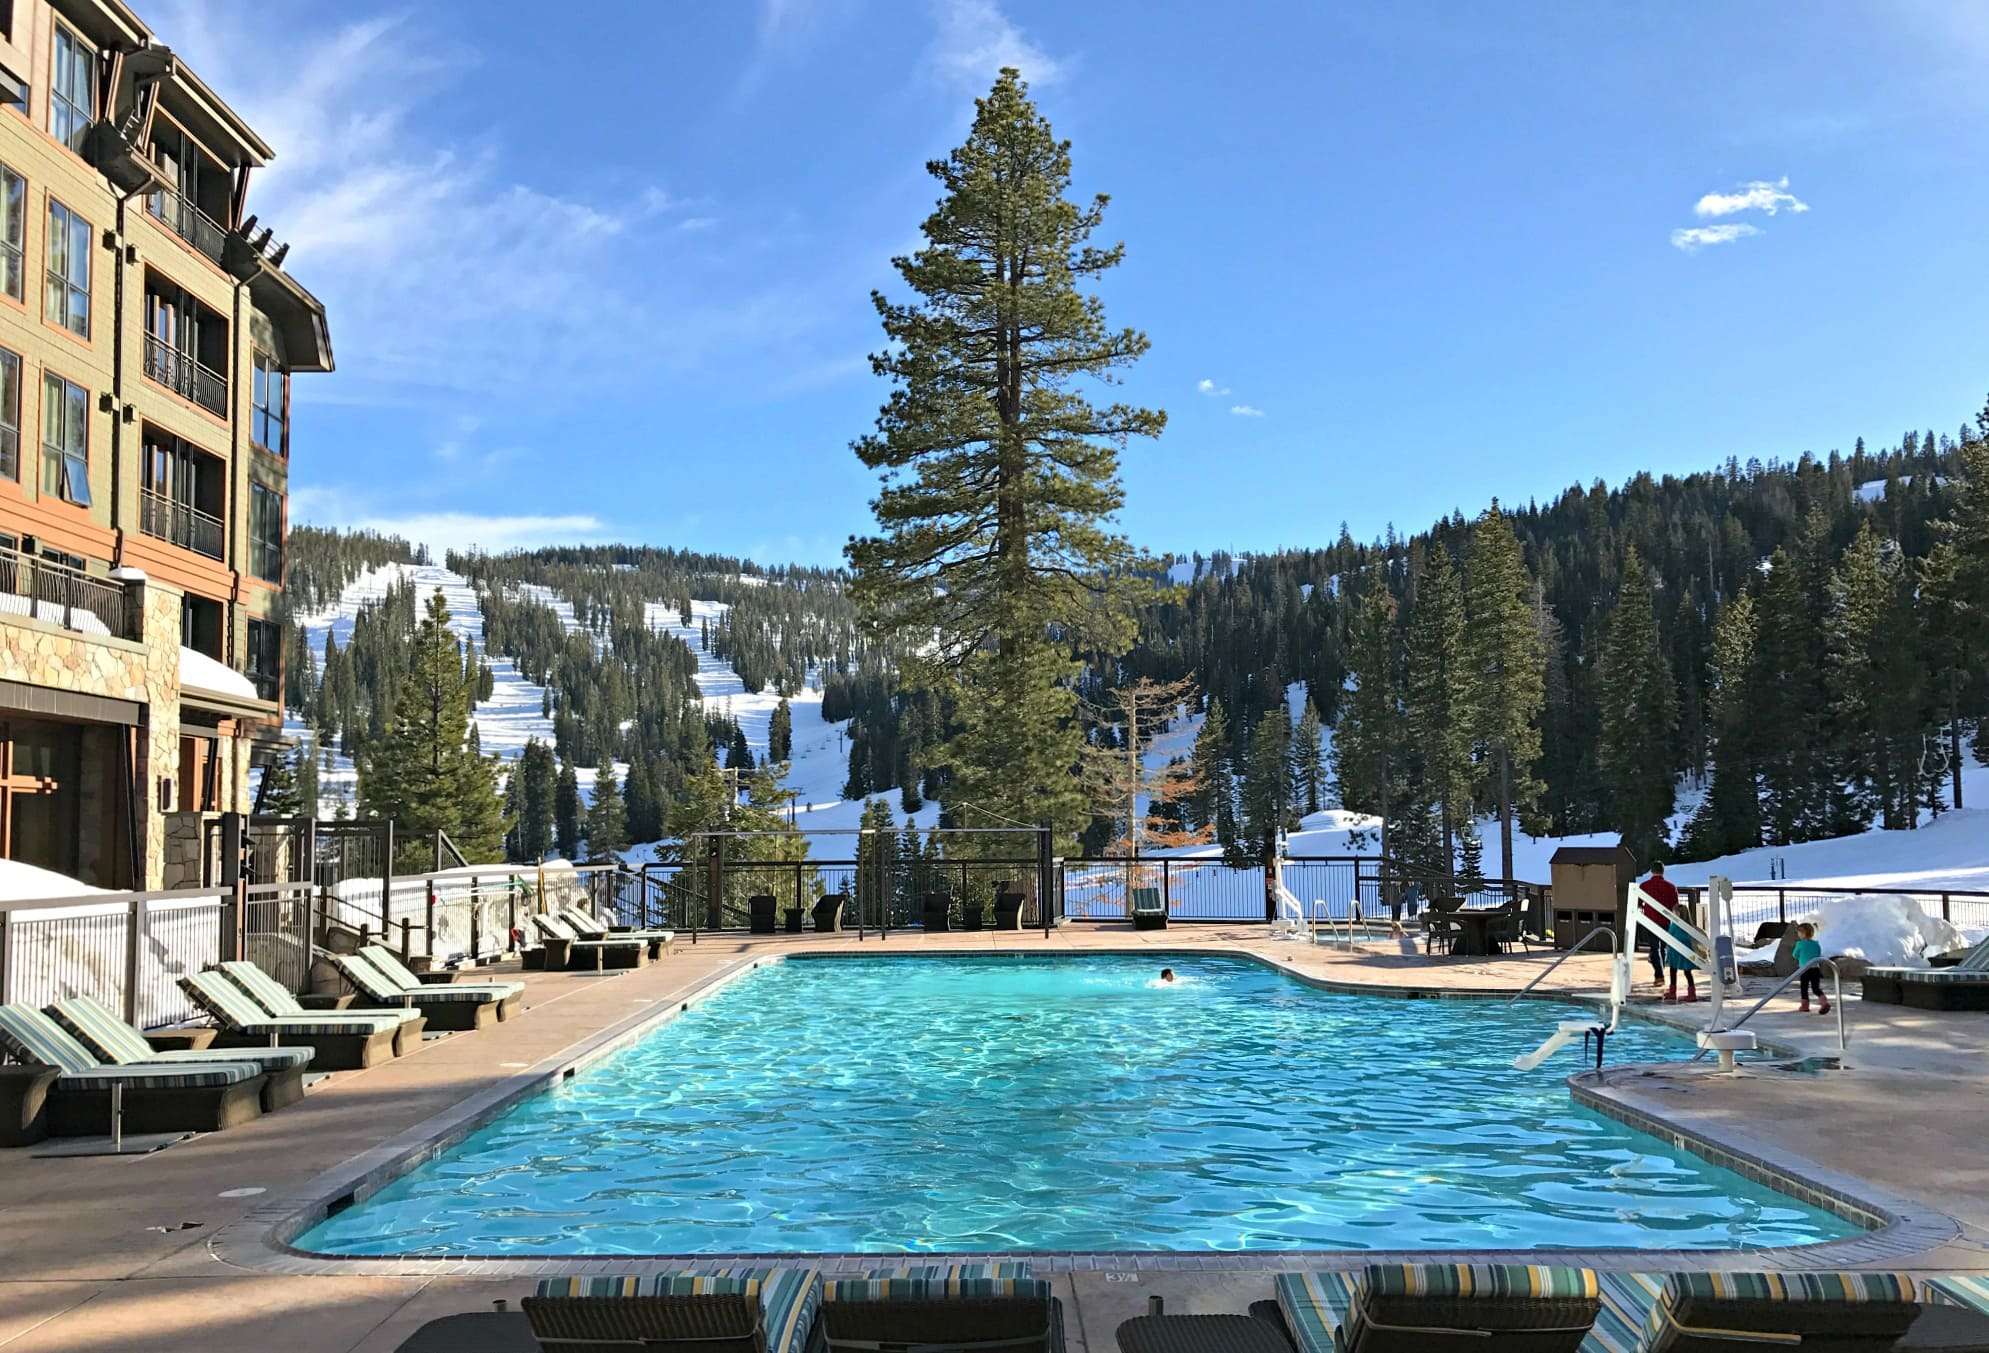 How'd you like to go for a dip in this heated pool at The Ritz-Carlton, Lake Tahoe at Northstar Ski Resort with kids?